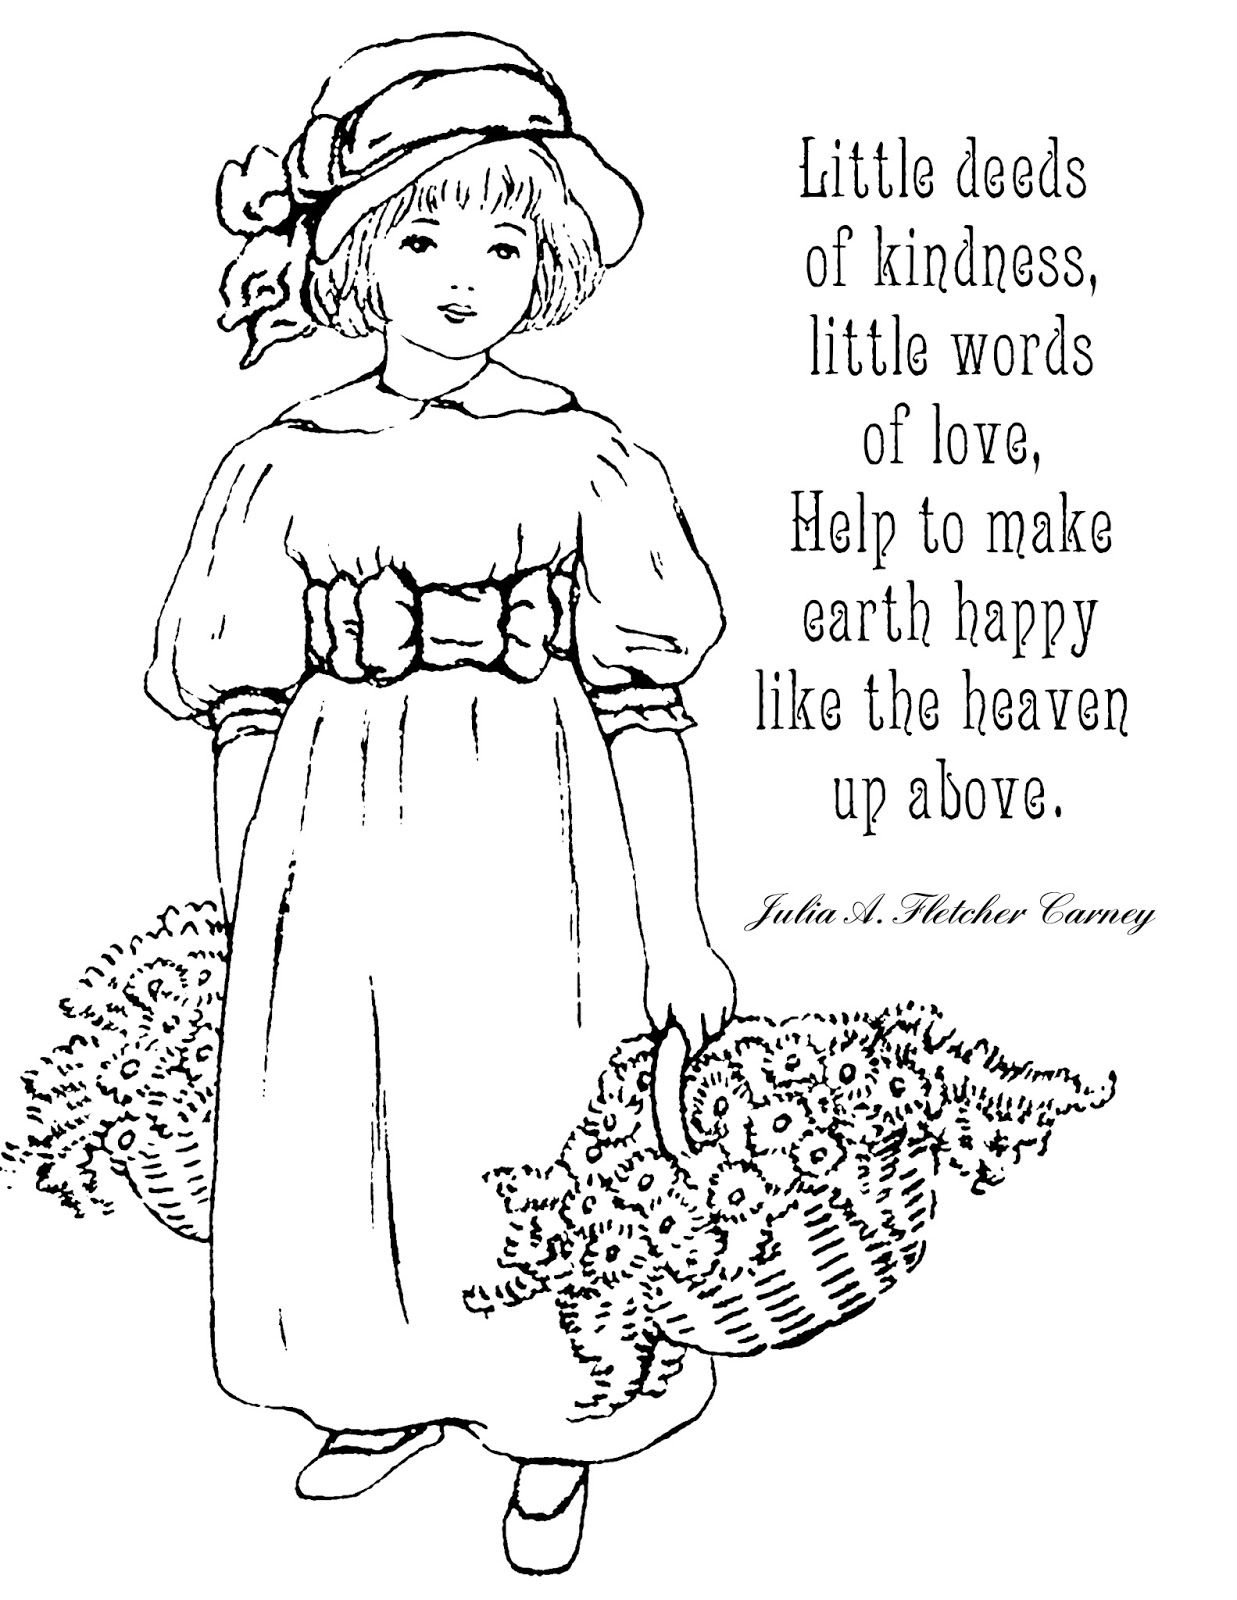 Coloring pages with quotes - 8 5 X 11 Printable Coloring Page With Quote About Kindness